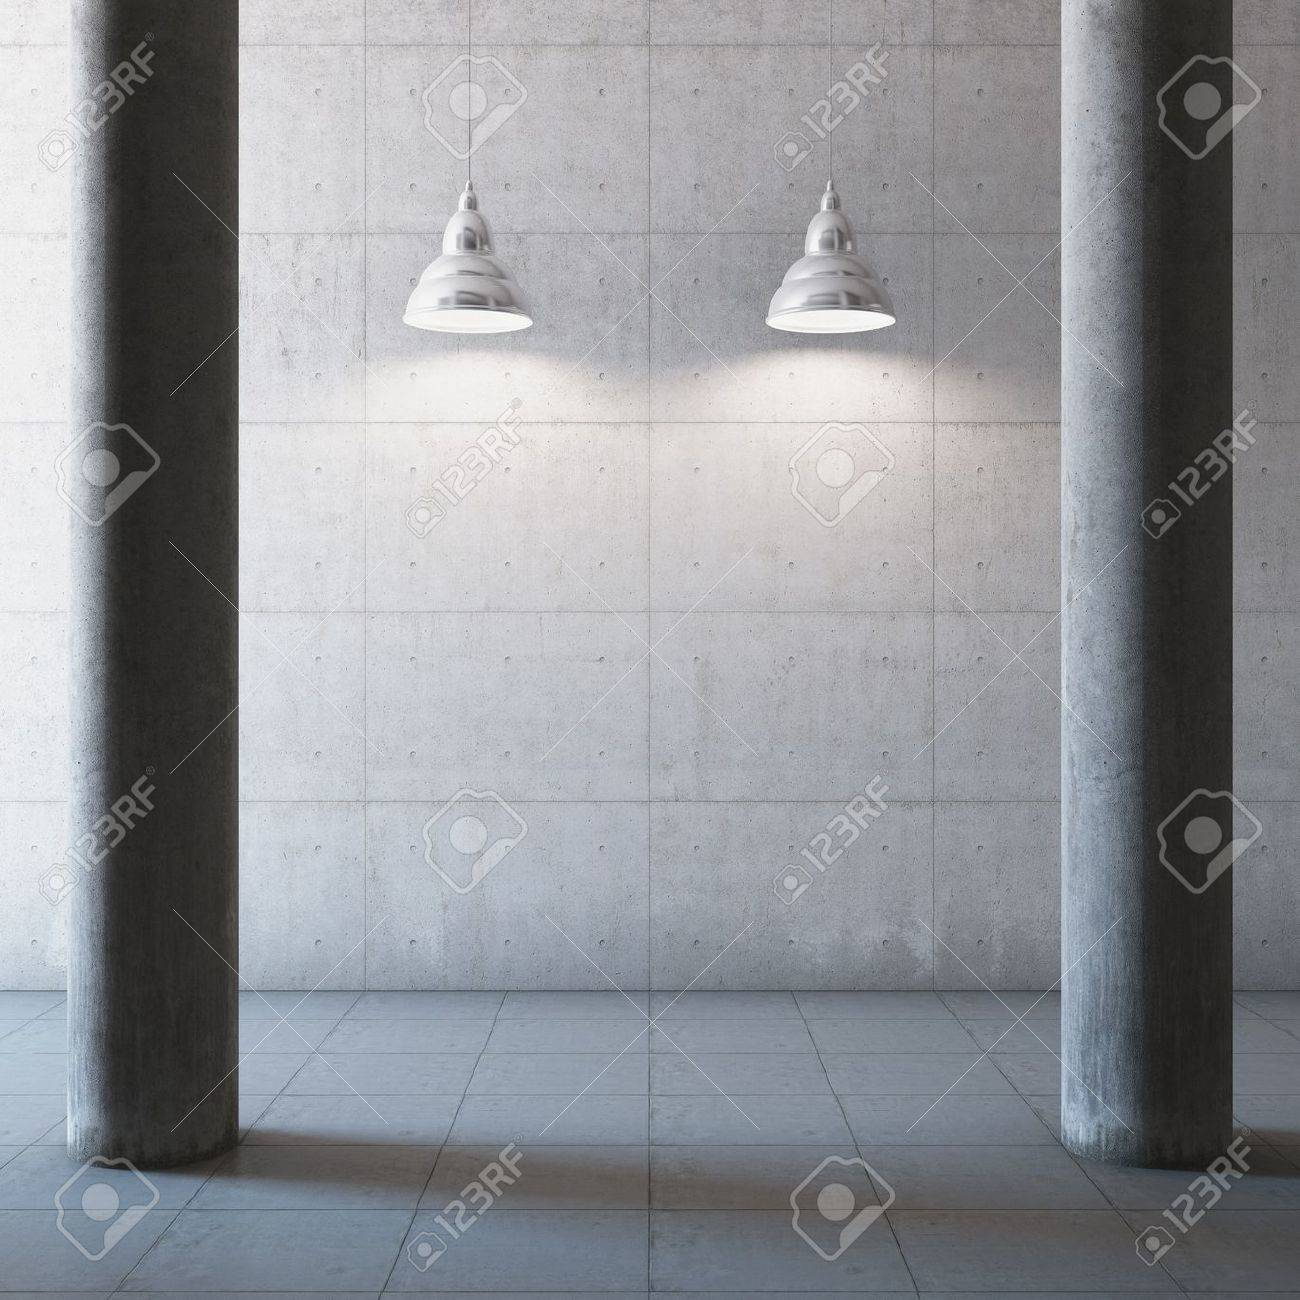 Empty large concrete hall with columns and illumination lamp Stock Photo - 21026056